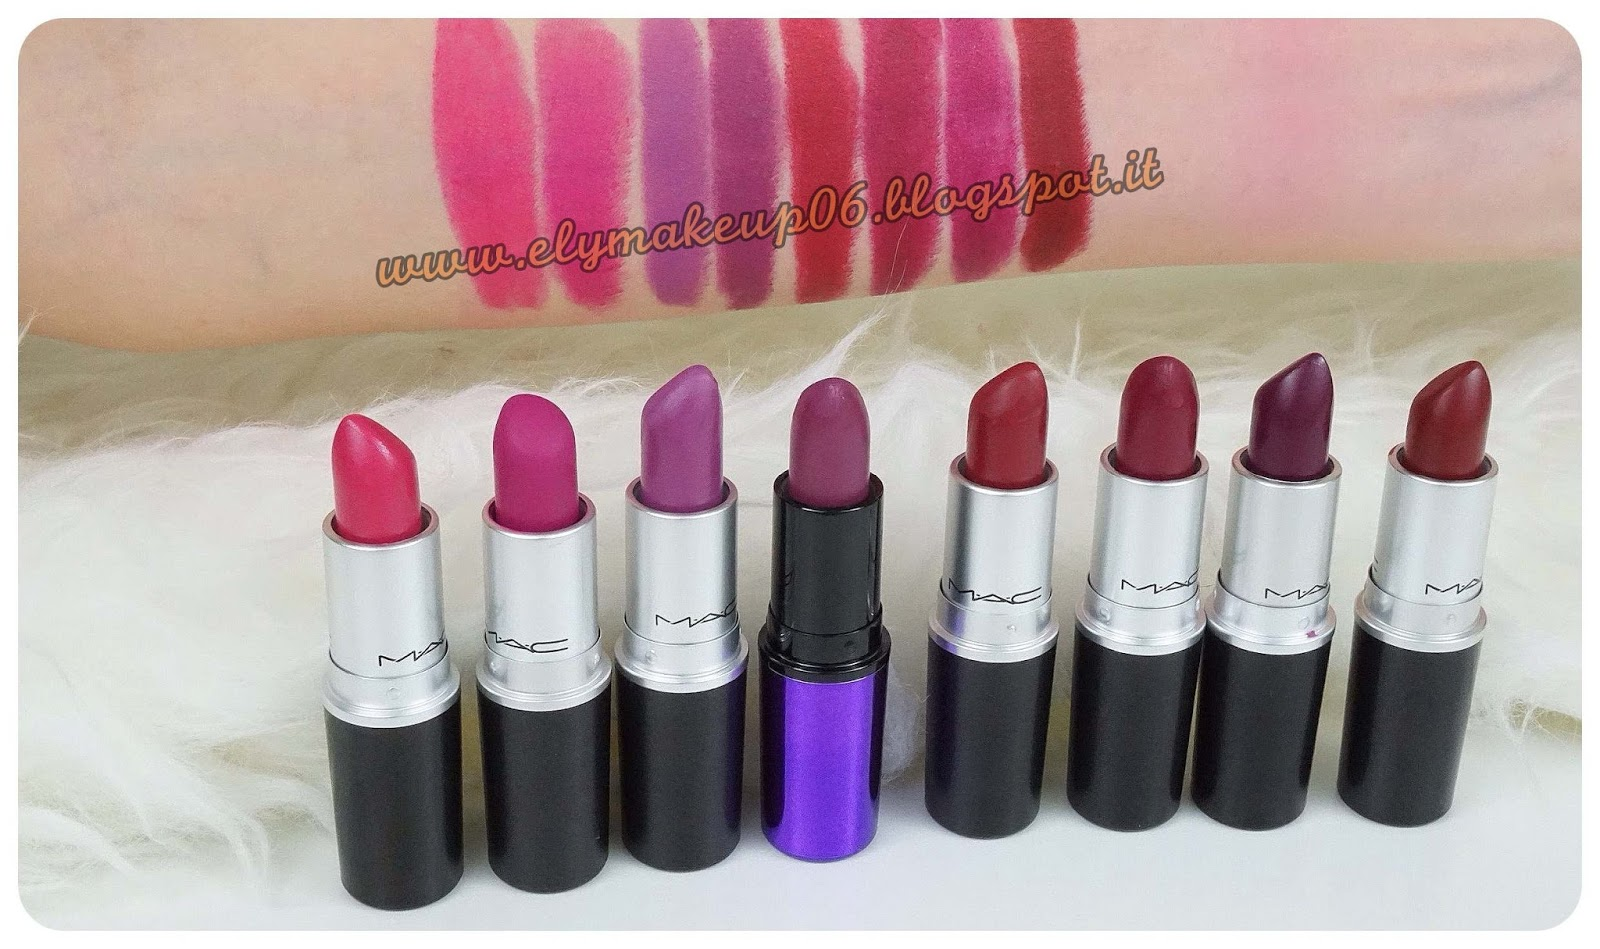 elymakeup my mac lipstick collection i miei rossetti